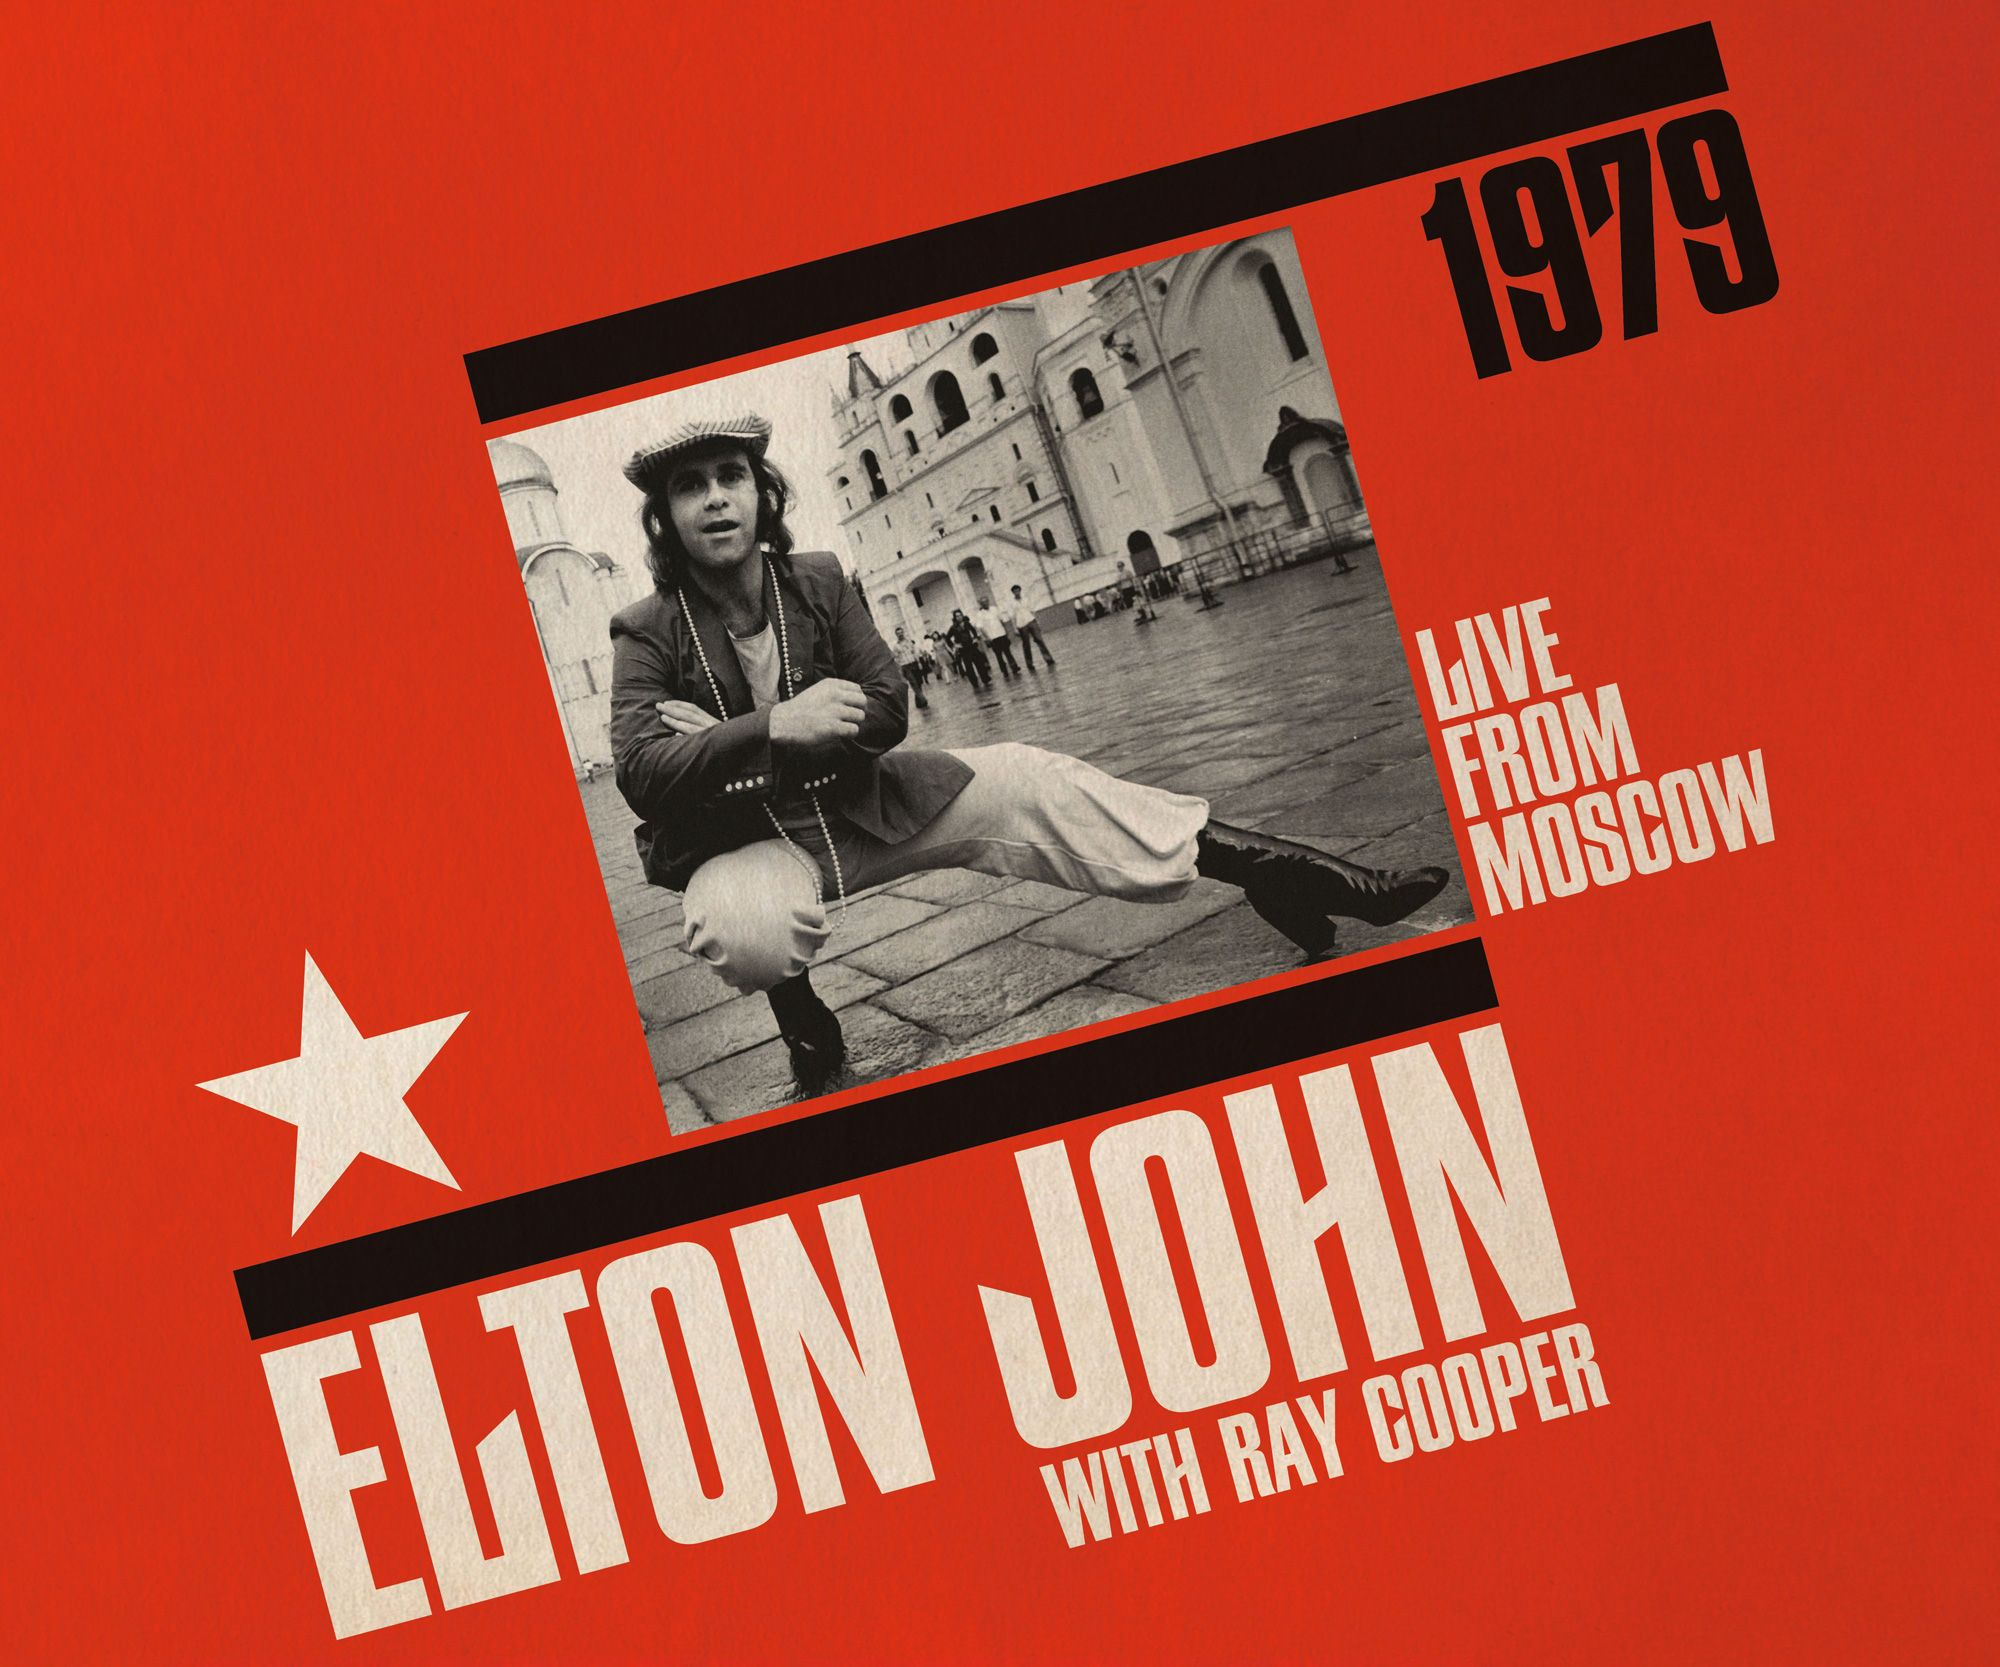 Elton Commemorates Record Store Day 2019 With Moscow 1979